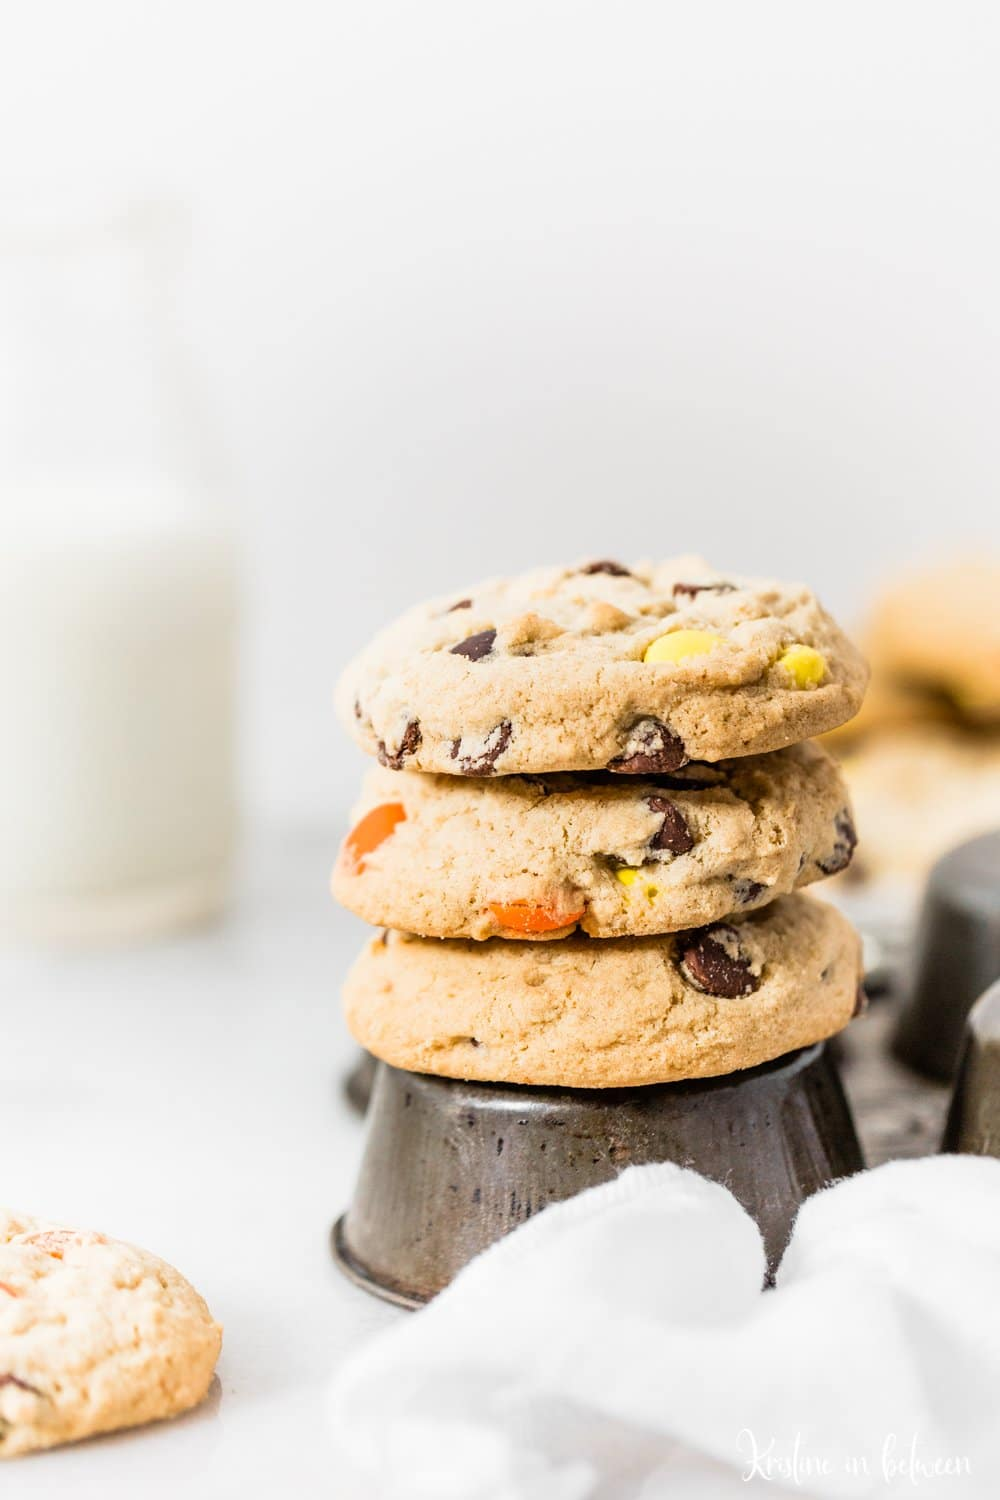 The best thick and chunky Reese's Pieces cookies that are loaded with chocolate chips and Reese's Pieces!